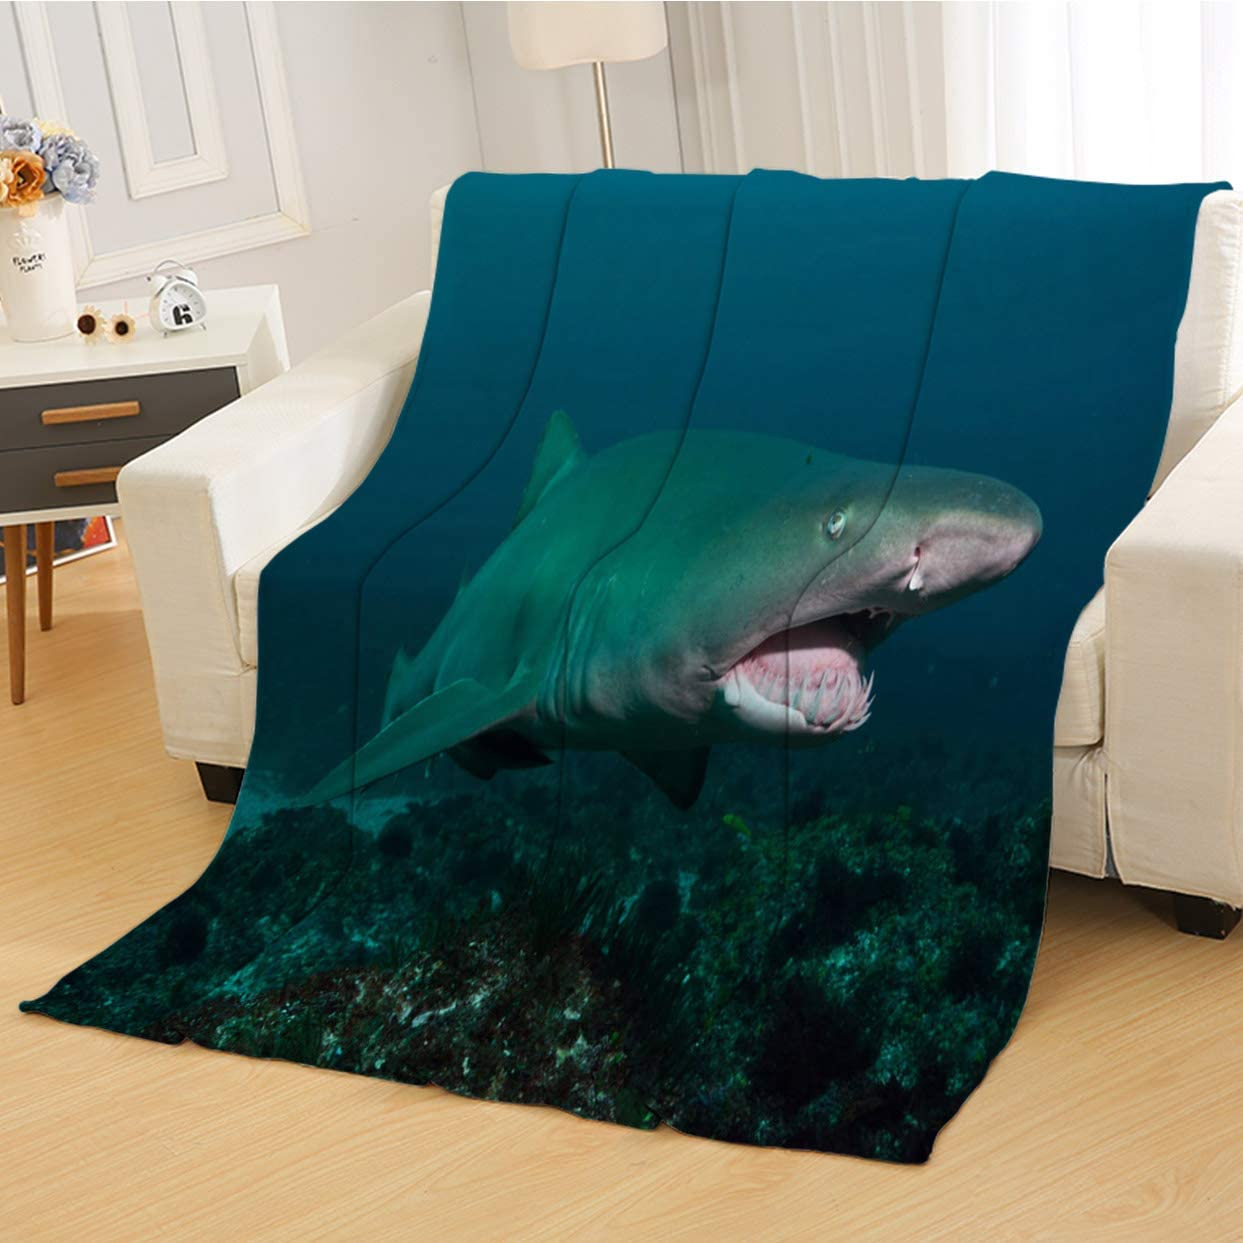 RLDSESS Grey Soft Twin Blanket, Soft Weighted Blanket,Grey Nurse Shark Tweed Heads New South Wales Australia,Super Soft Blanketry for Bed Couch,Twin Size: 50Wx70L inch